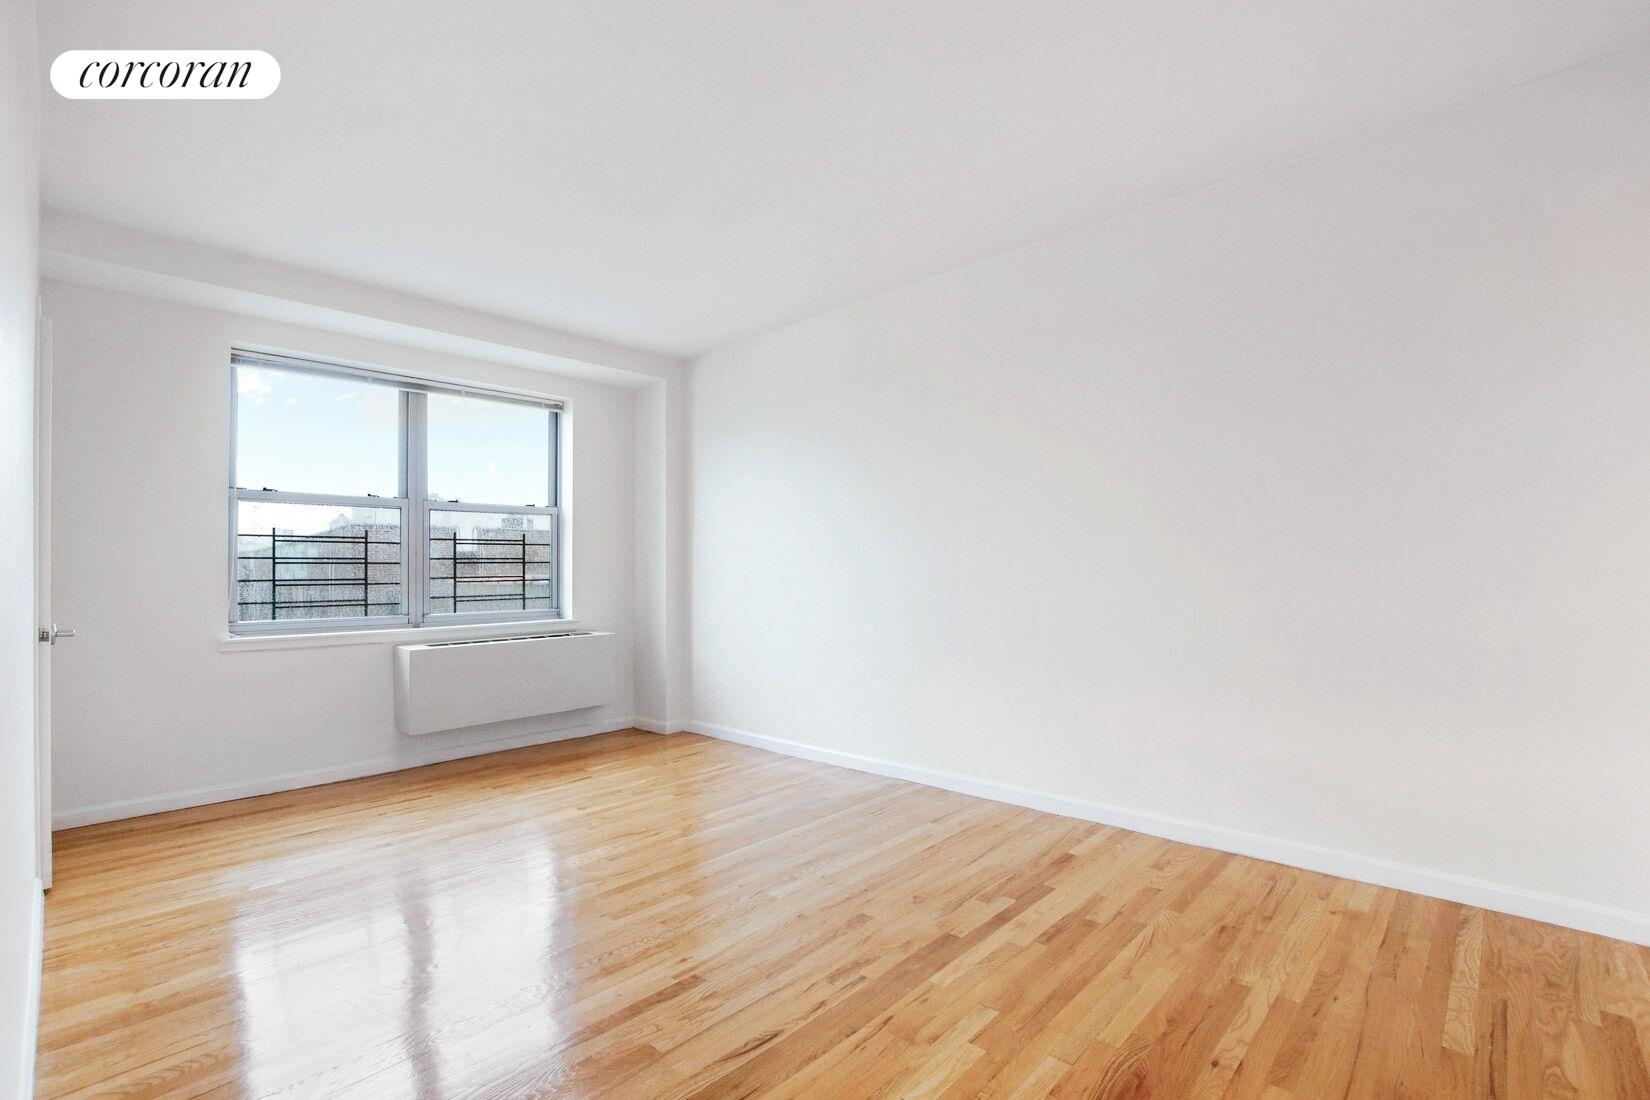 41-02 Queens Boulevard, 4B, Living Room